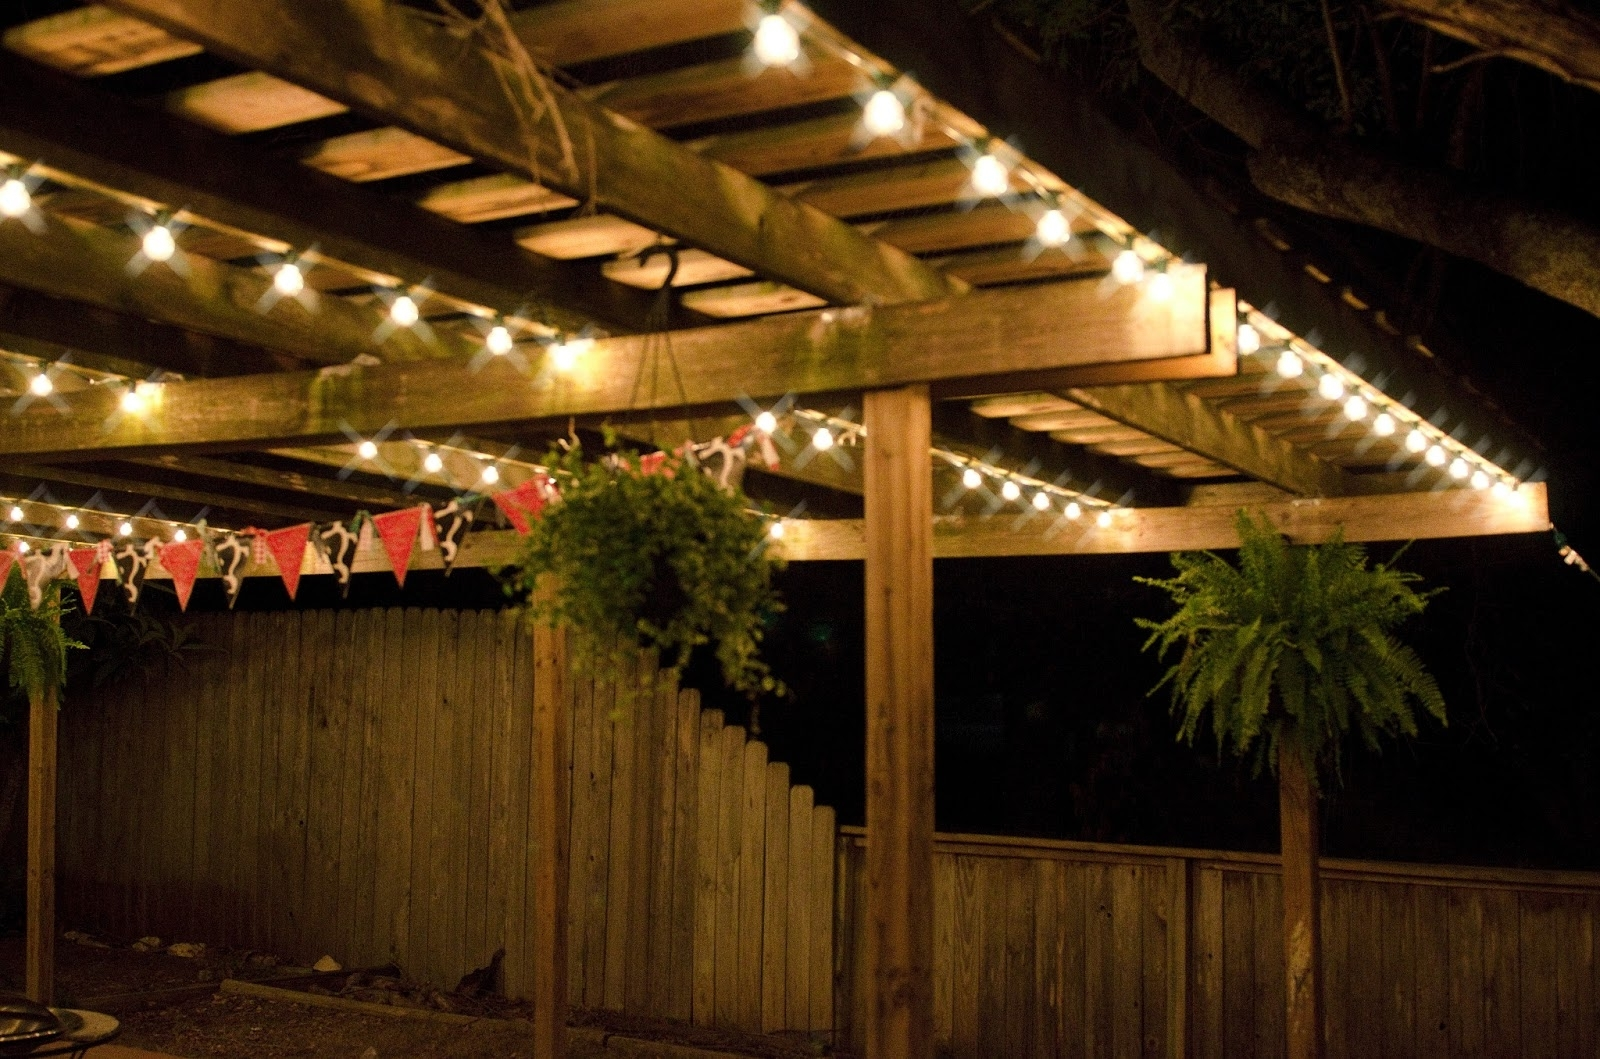 Outdoor Deck String Lighting Also How To Hang Lights On Ideas Images For Latest Outdoor Hanging Lights On String (View 12 of 20)